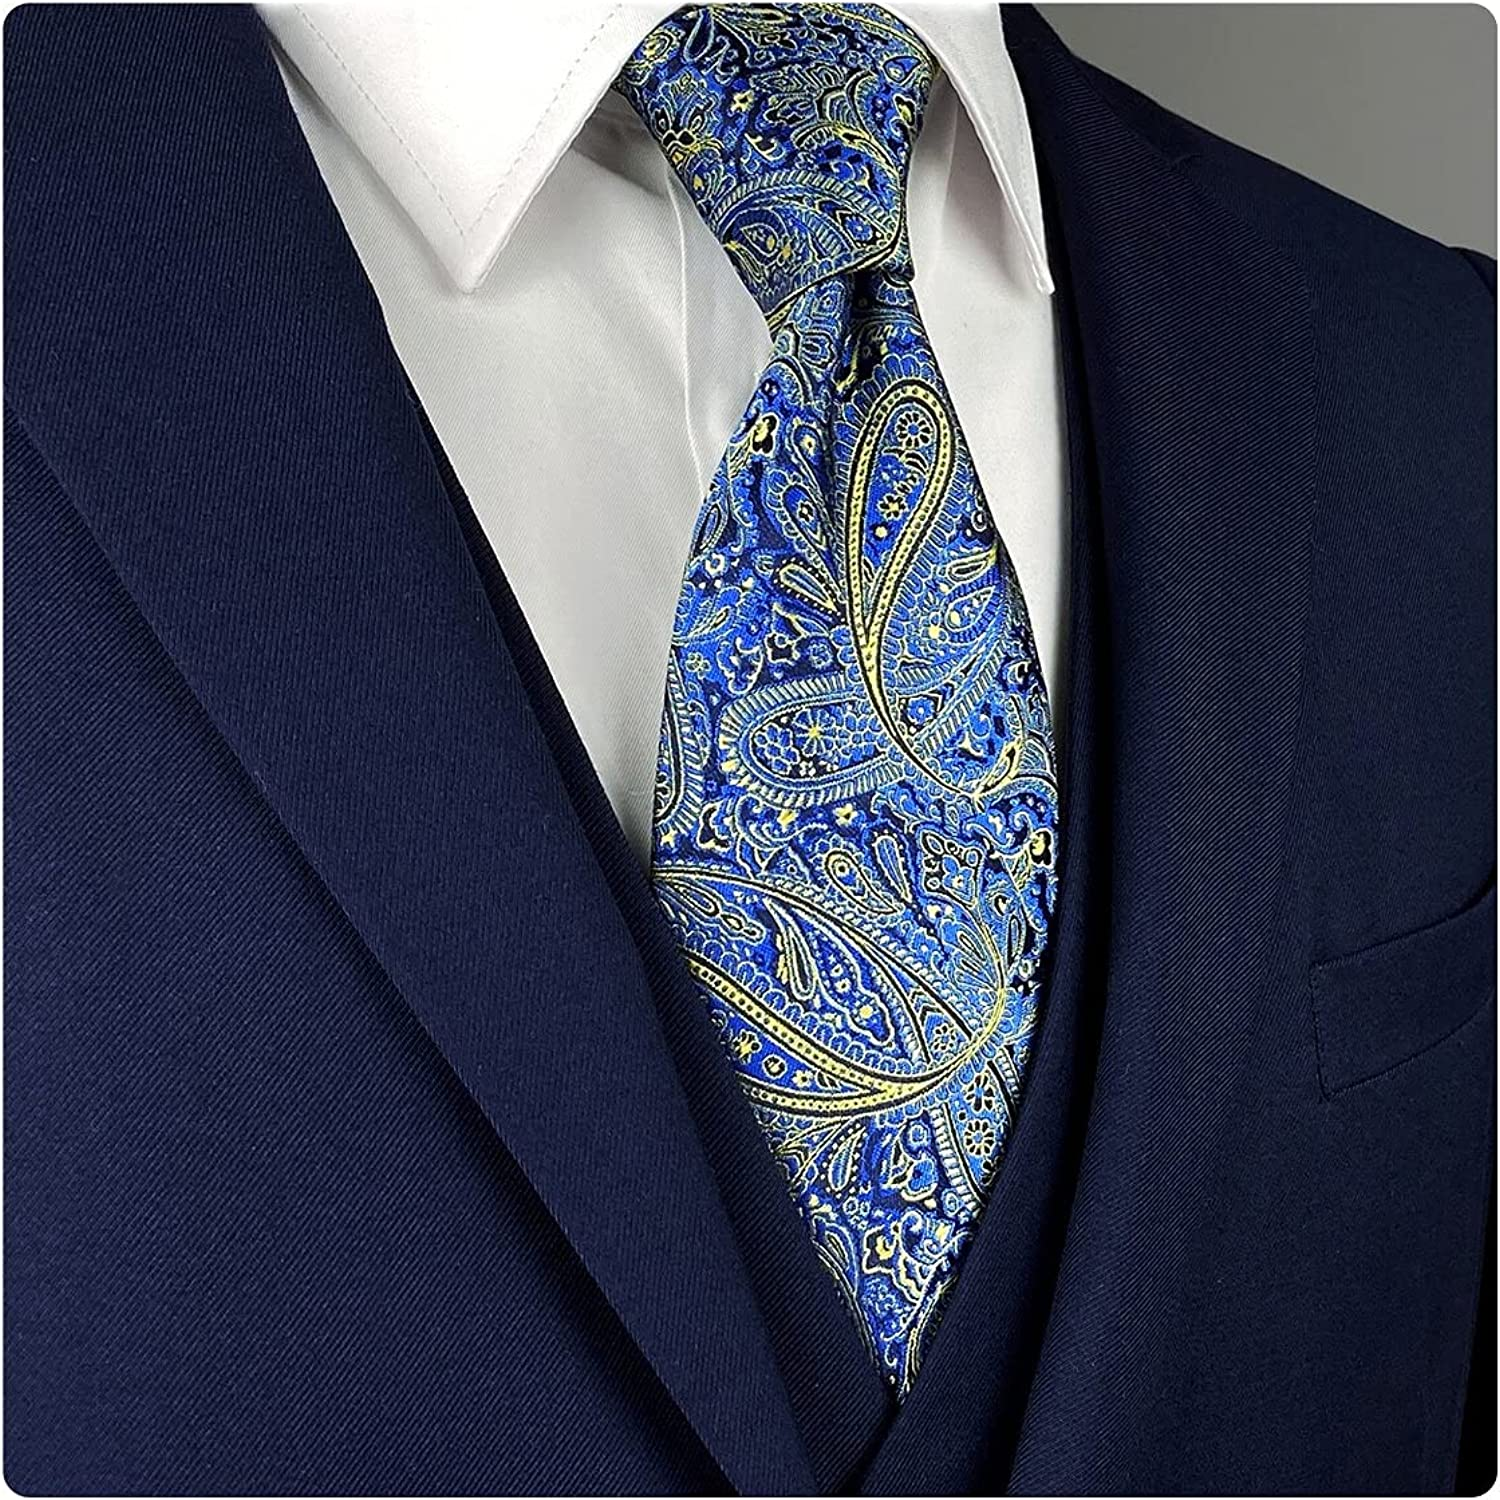 S&W SHLAX&WING Tie for Men Dark Royal Blue and Men's Neckties Paisley Classic Size 57.5